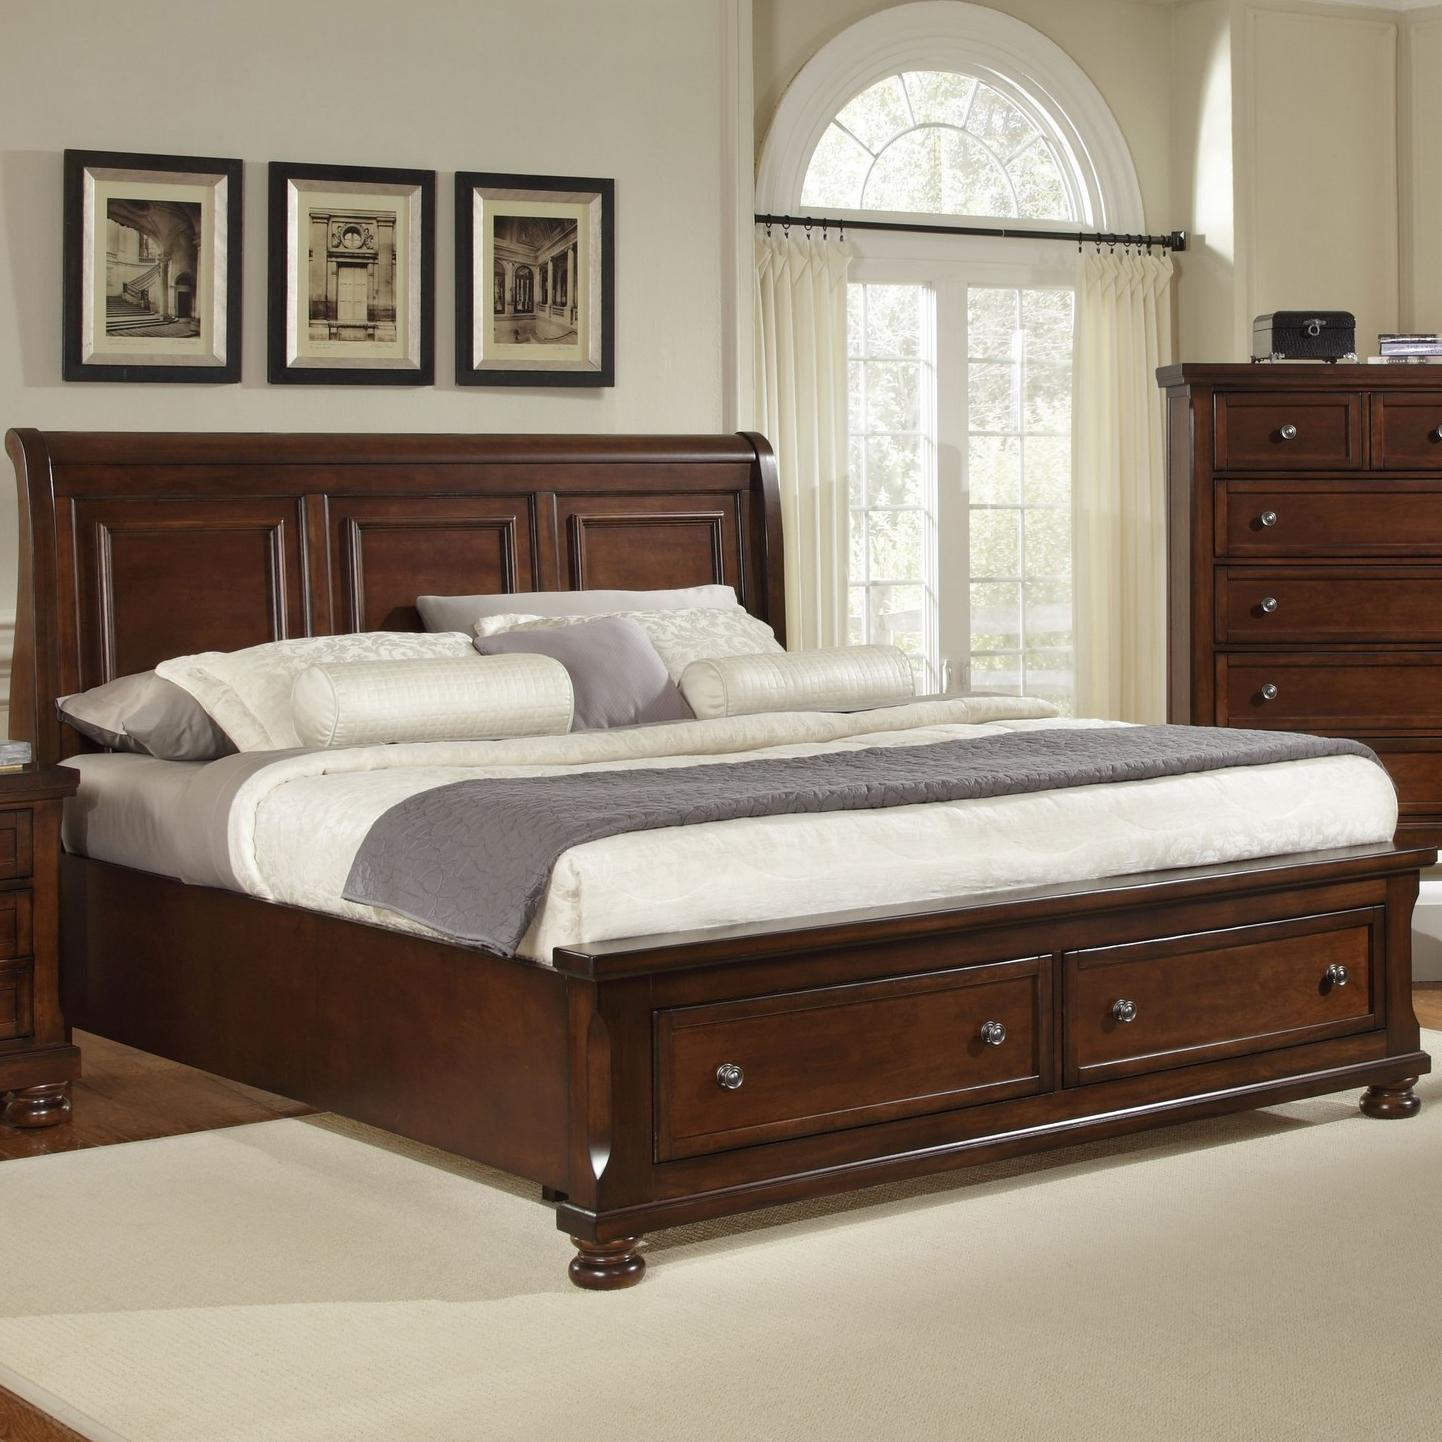 Vaughan Bassett Reflections King Storage Bed With Sleigh Headboard Within Frames  Drawers Decor 19